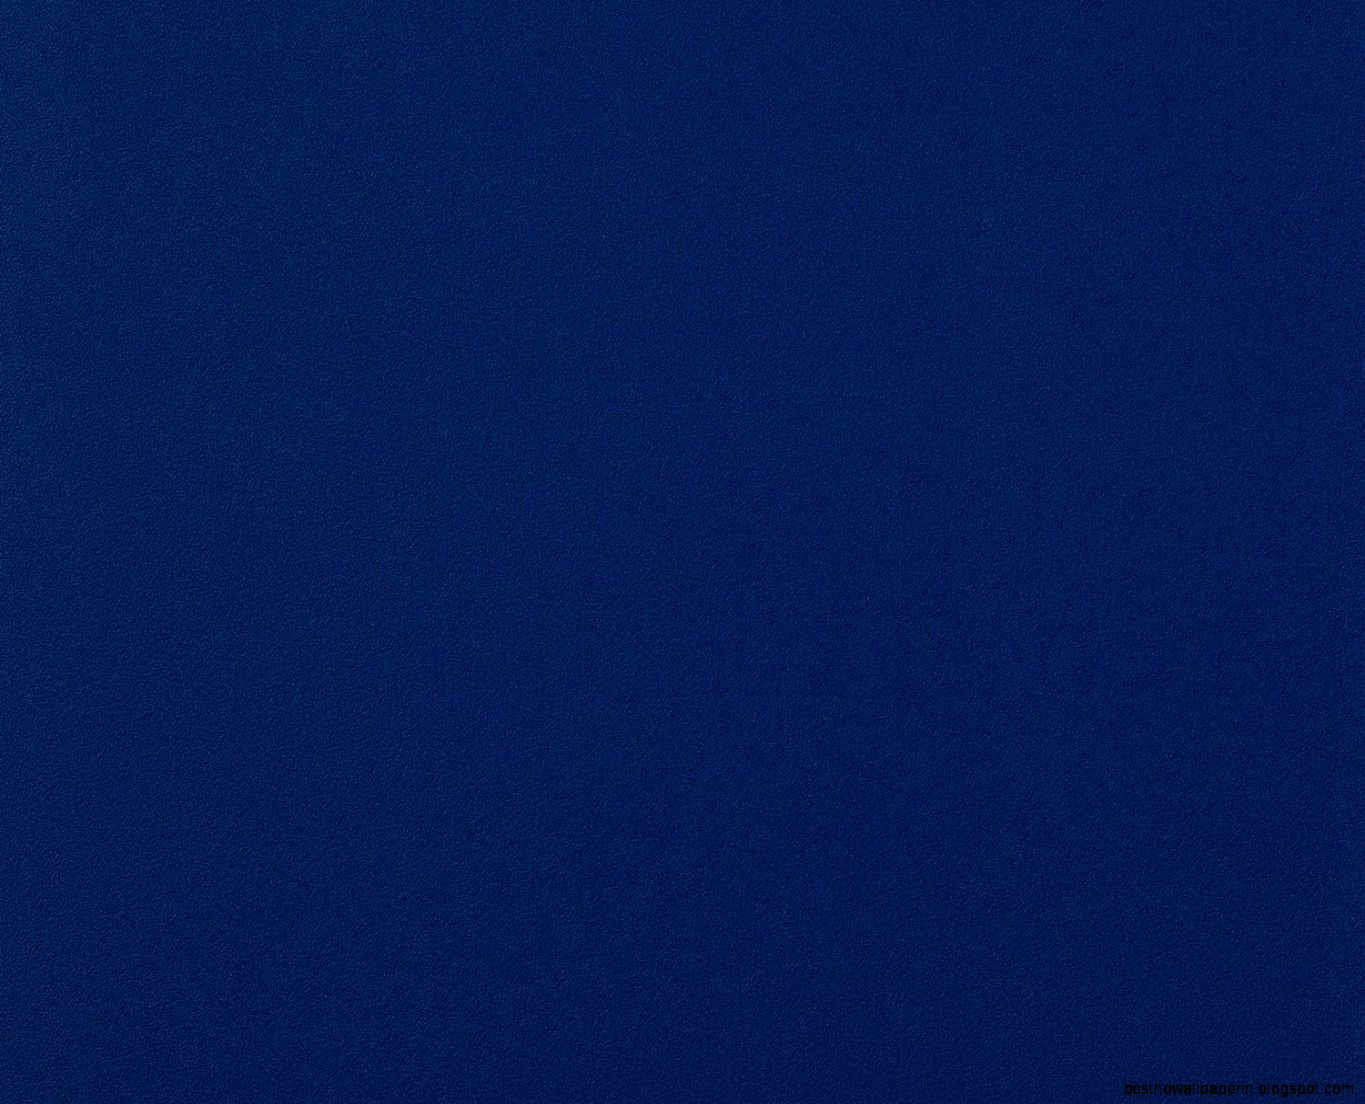 Plain Blue Background Hd | Best HD Wallpapers